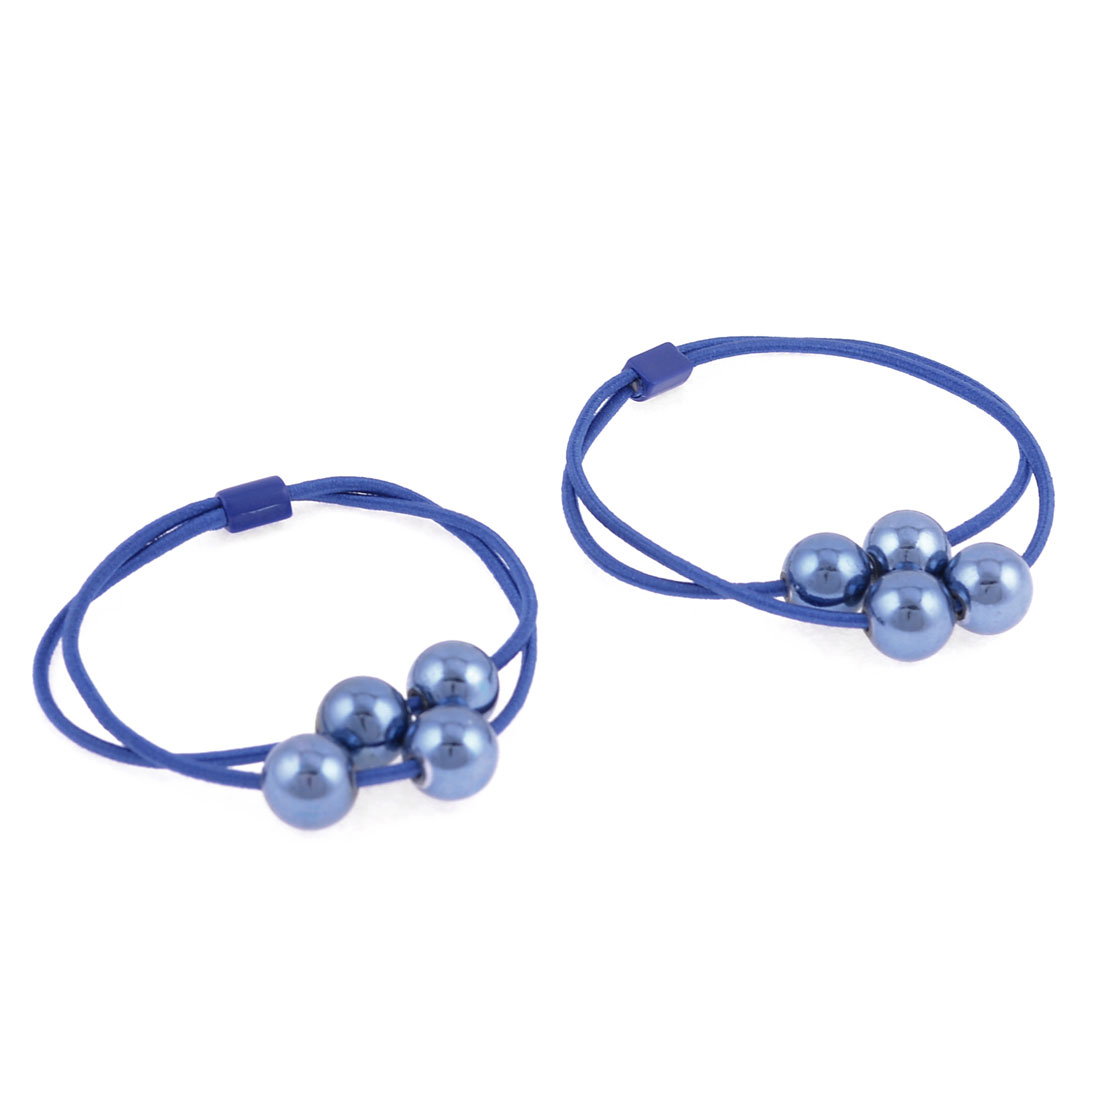 Loyal Blue Glistening Beads Accent Flexible Blue Hair Band Ponytail Holder Pair